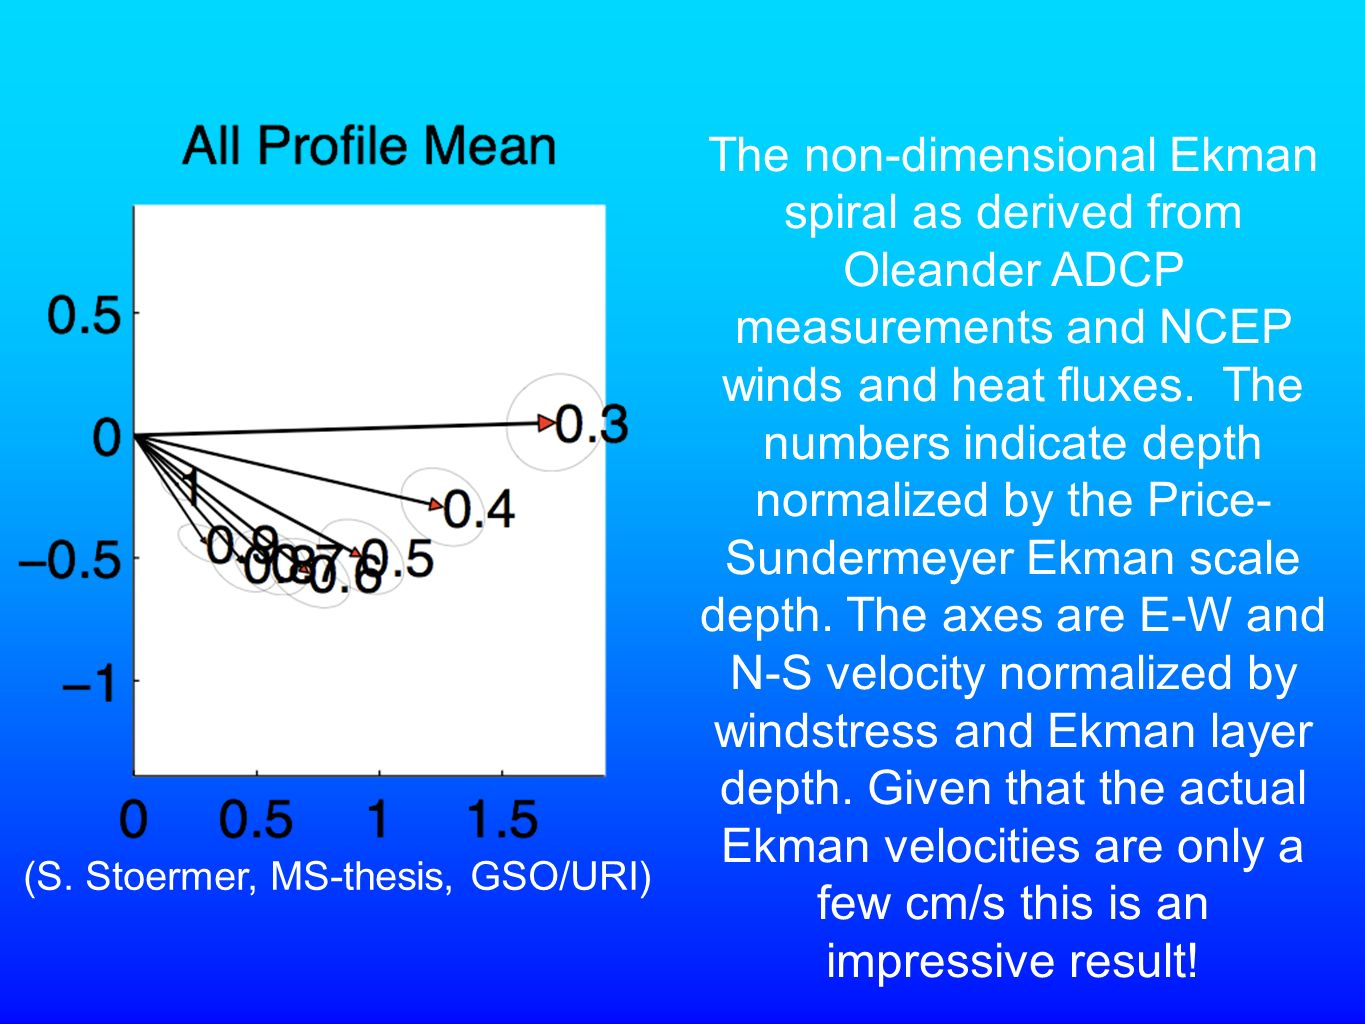 The non-dimensional Ekman spiral as derived from Oleander ADCP measurements and NCEP winds and heat fluxes.